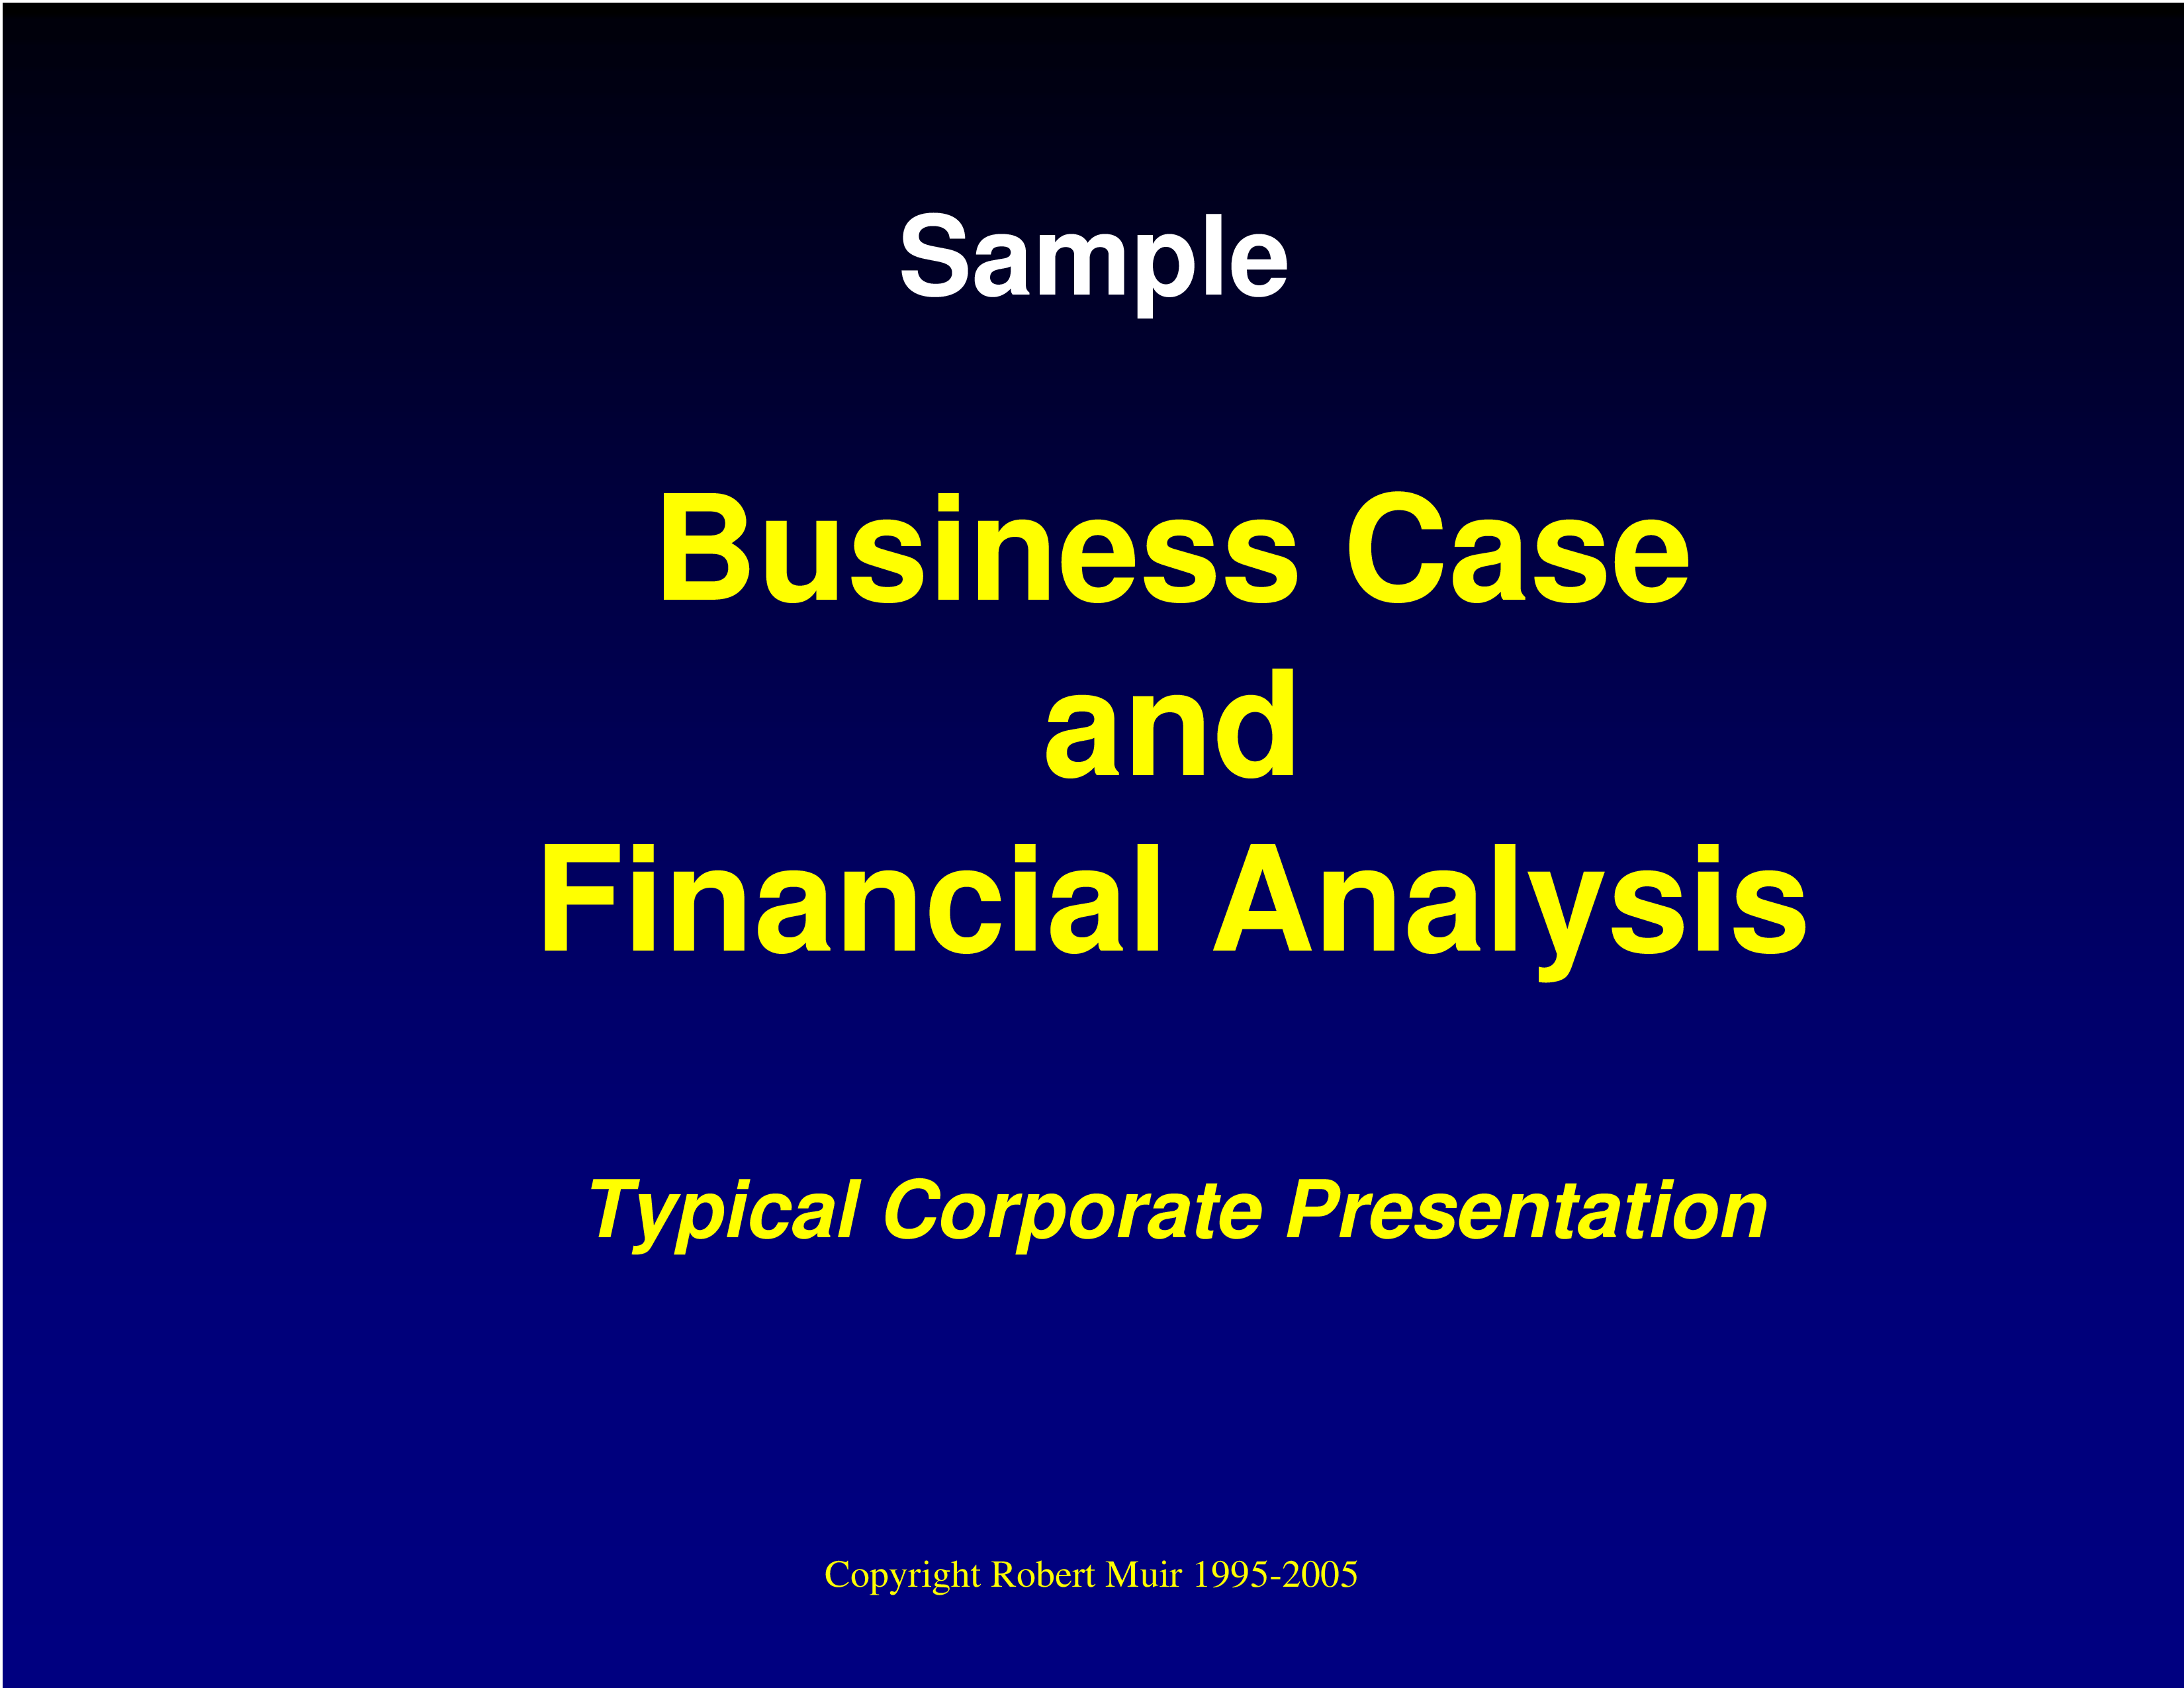 Financial Business Case Analysis main image